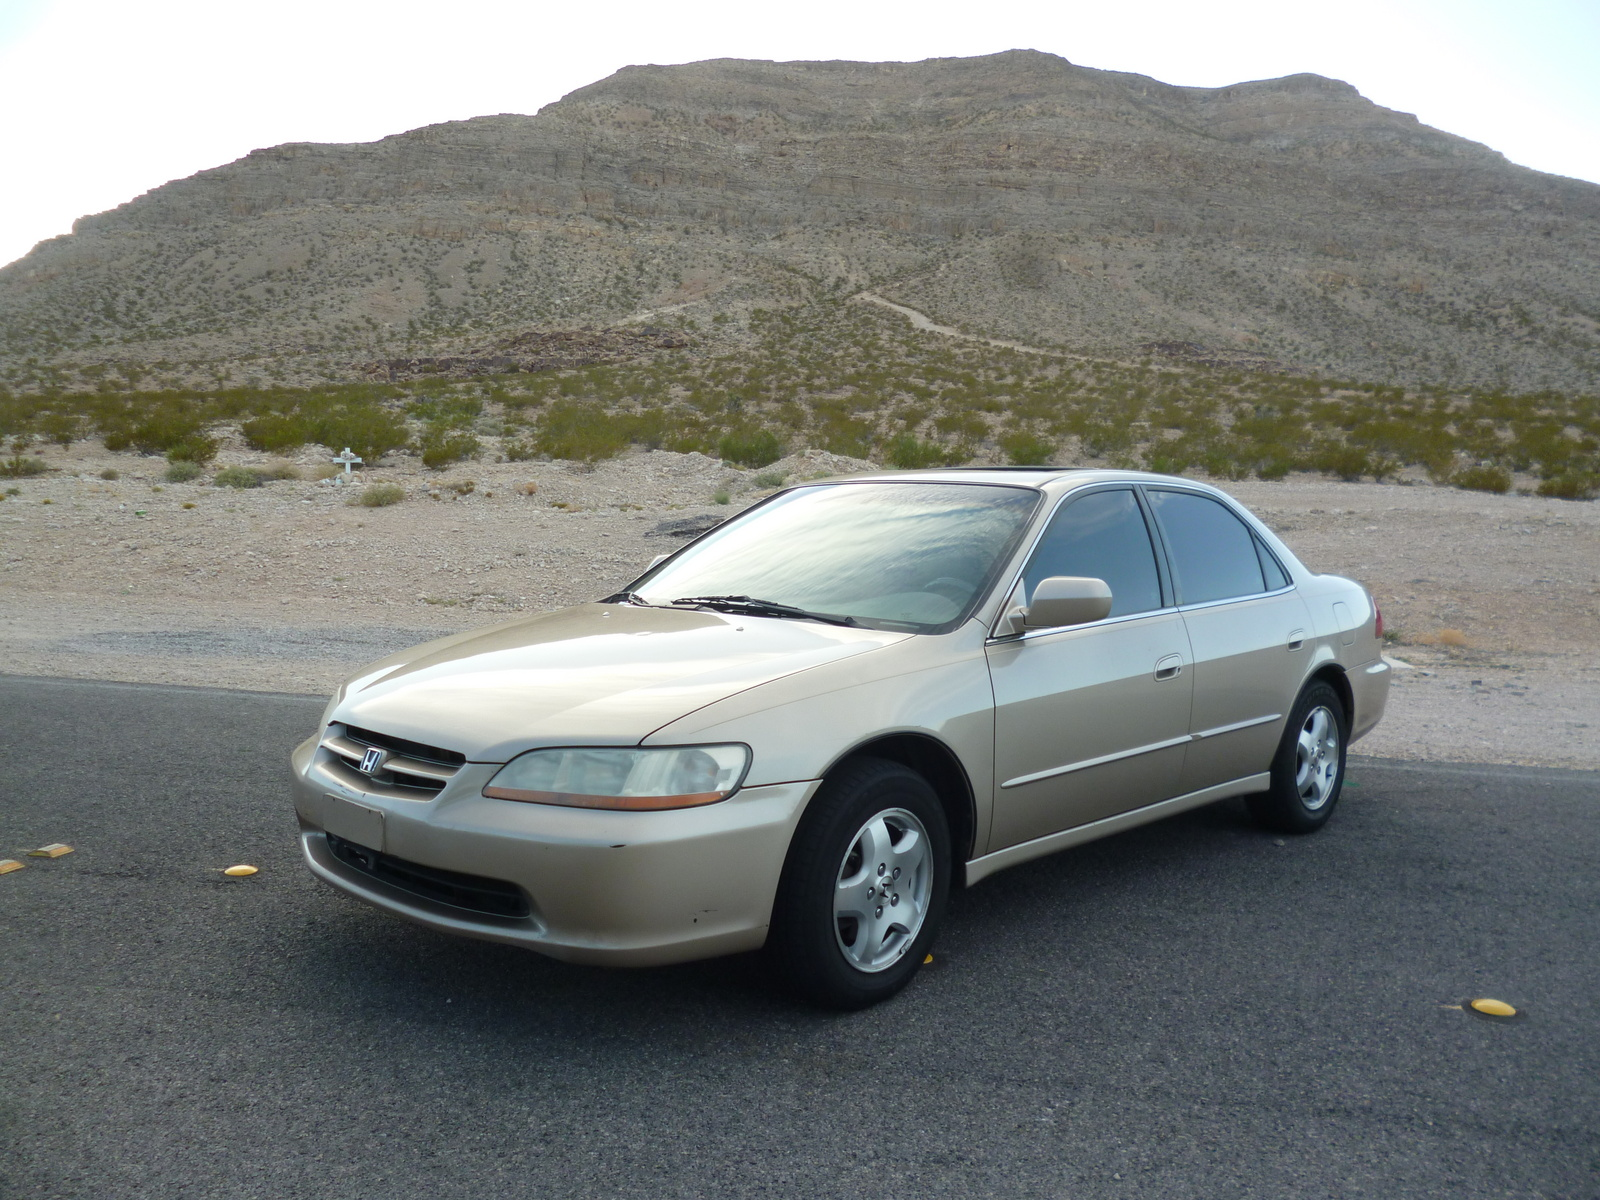 2000 Honda Accord EX V6 Coupe Trim OverviewHonda Accord 2000 Coupe